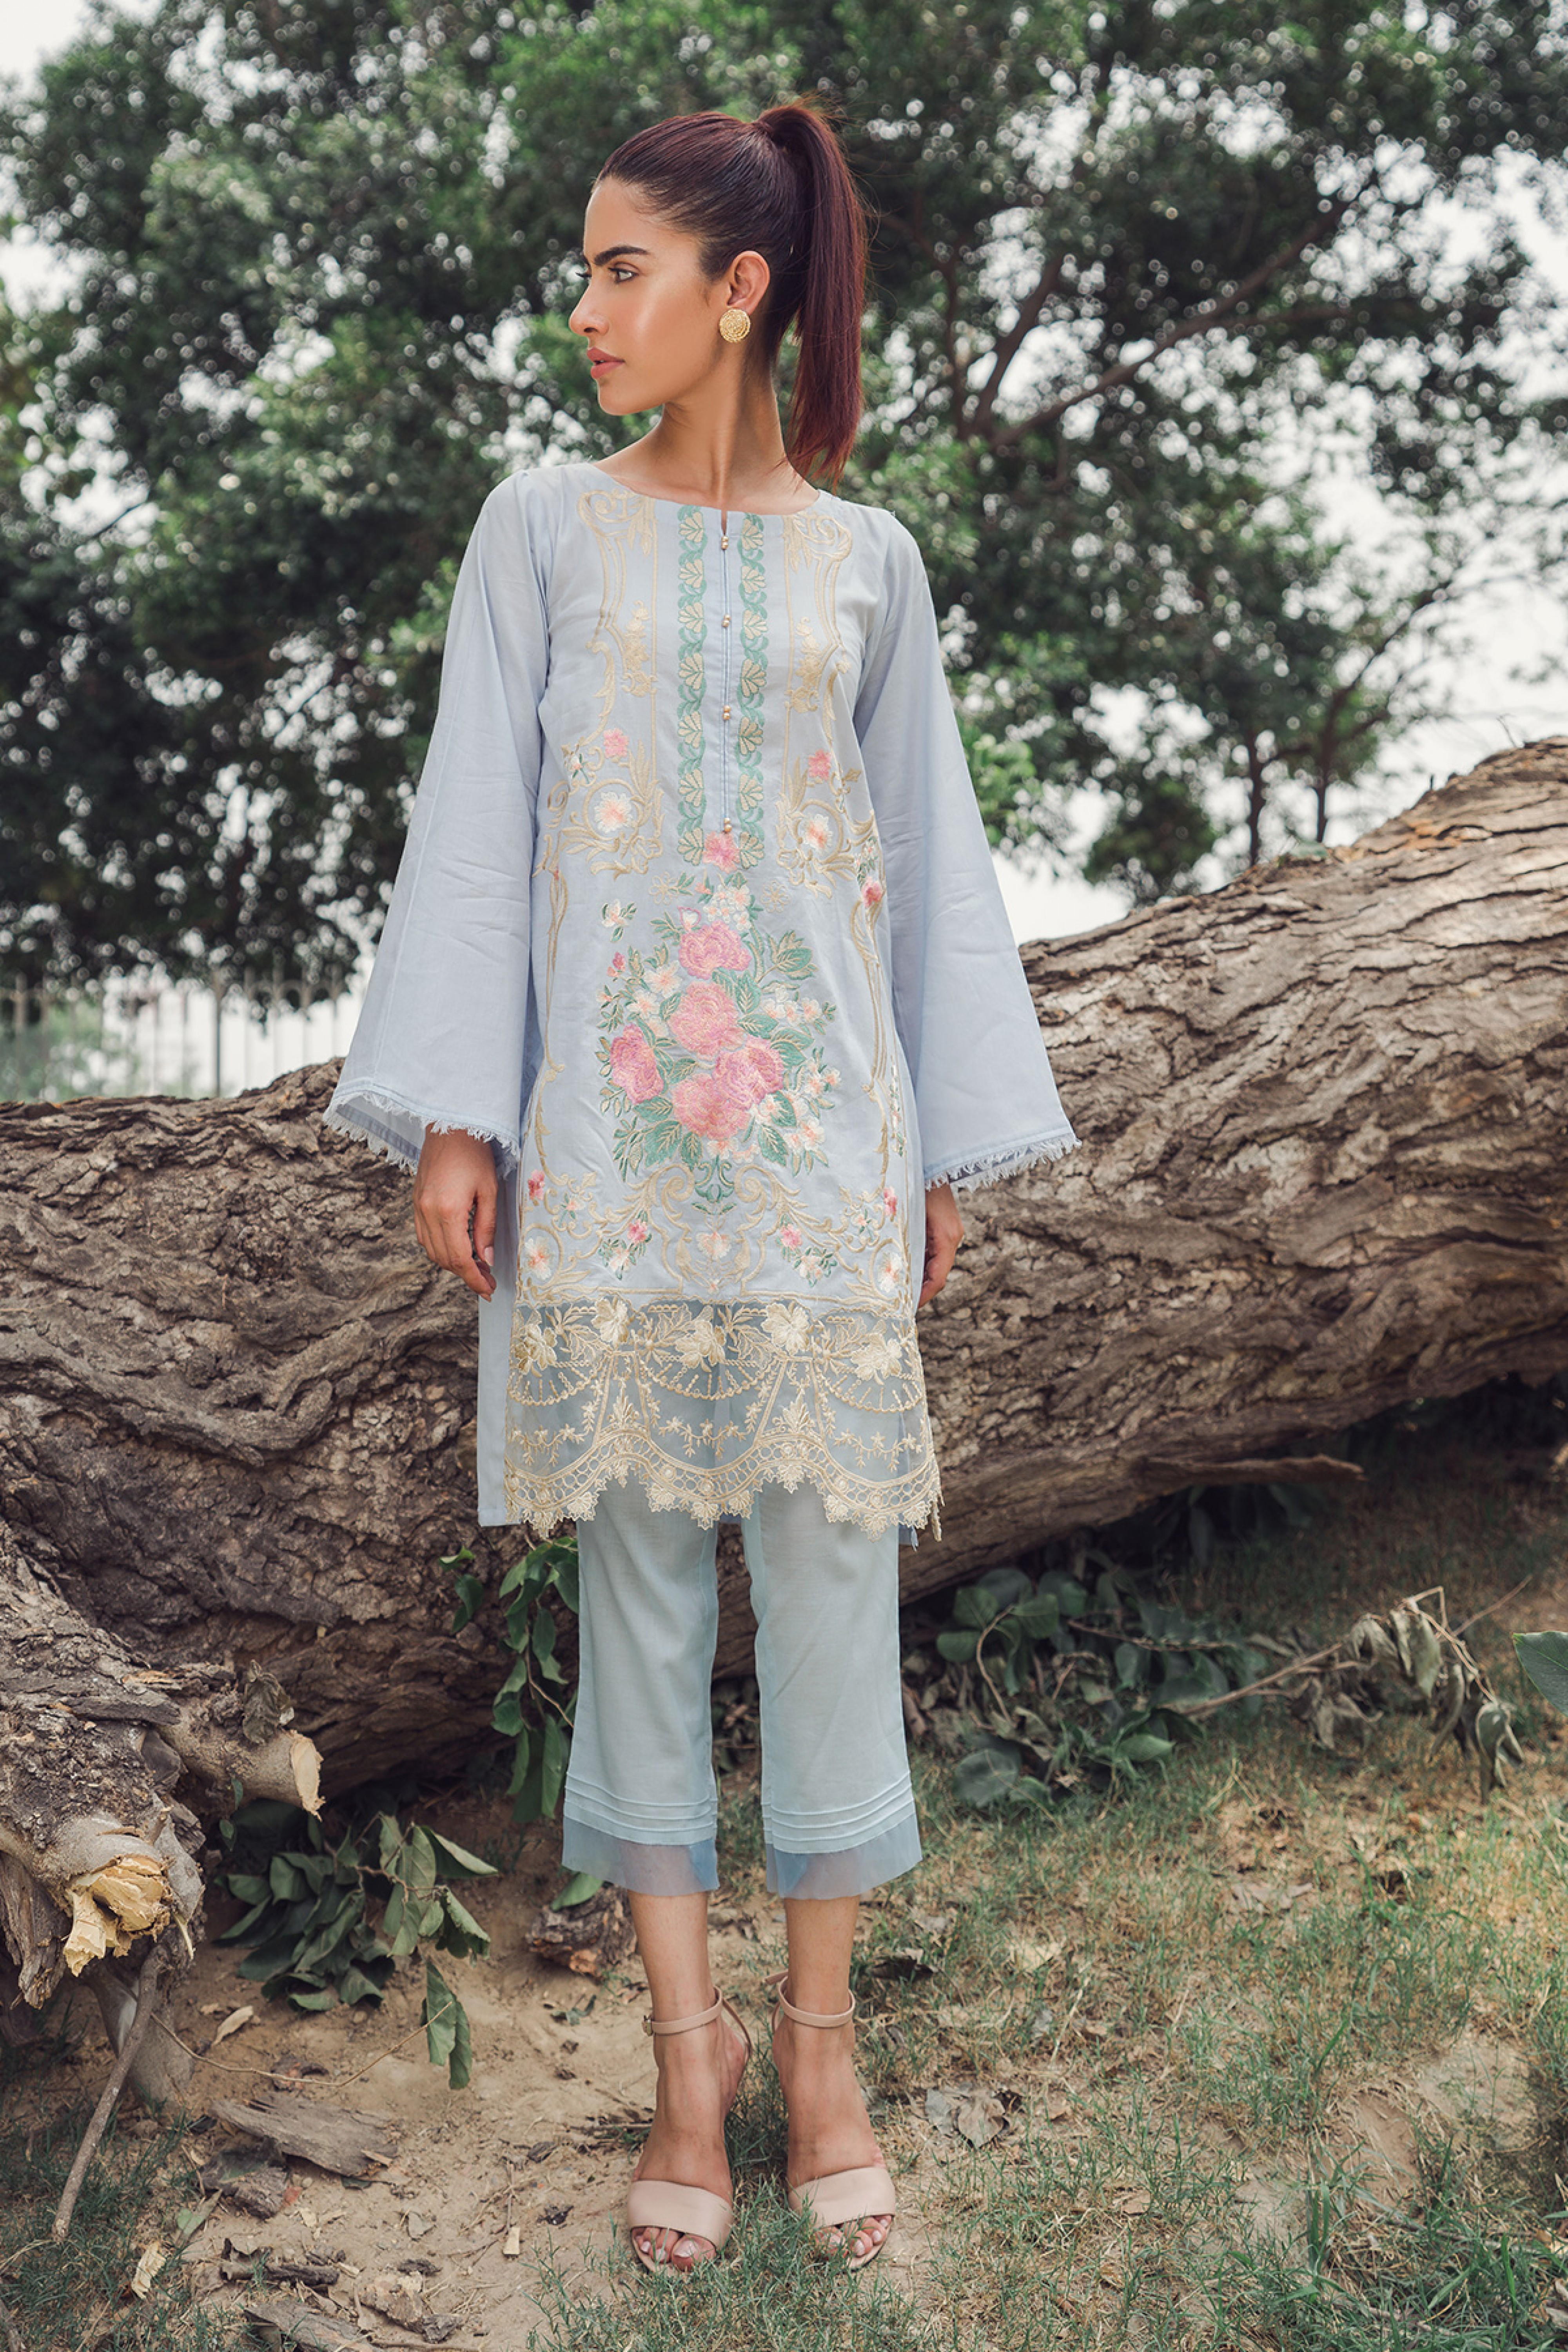 FLORAL WAVE (EMBROIDERED SHIRT & TROUSER)